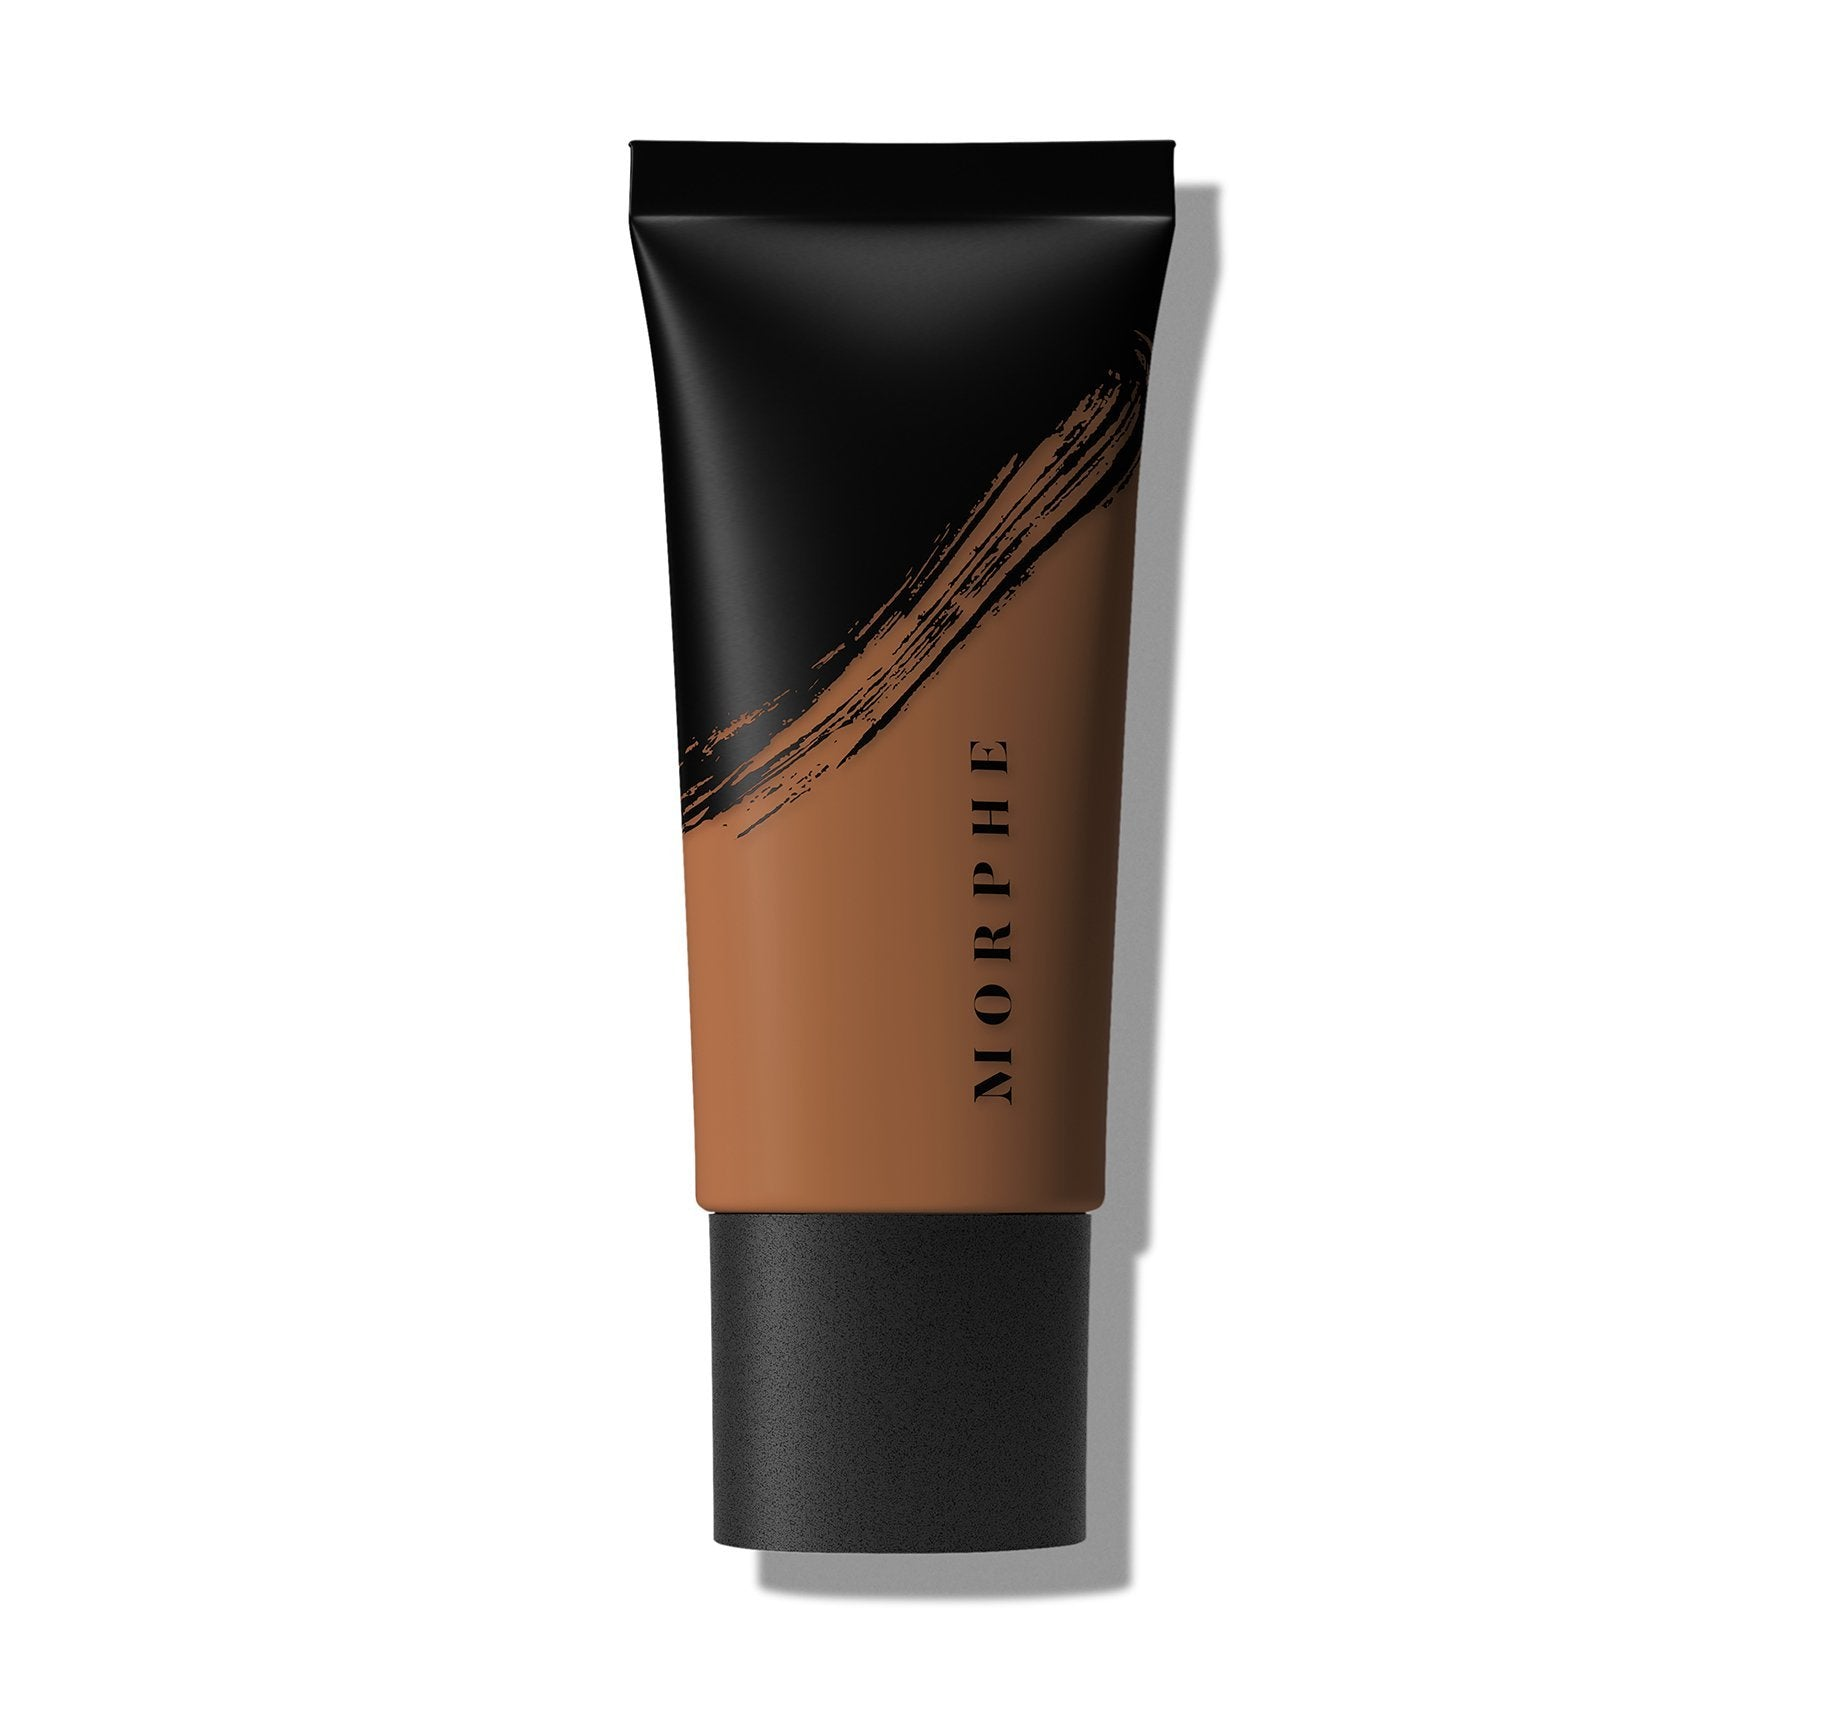 FLUIDITY FULL-COVERAGE FOUNDATION - F3.109, view larger image